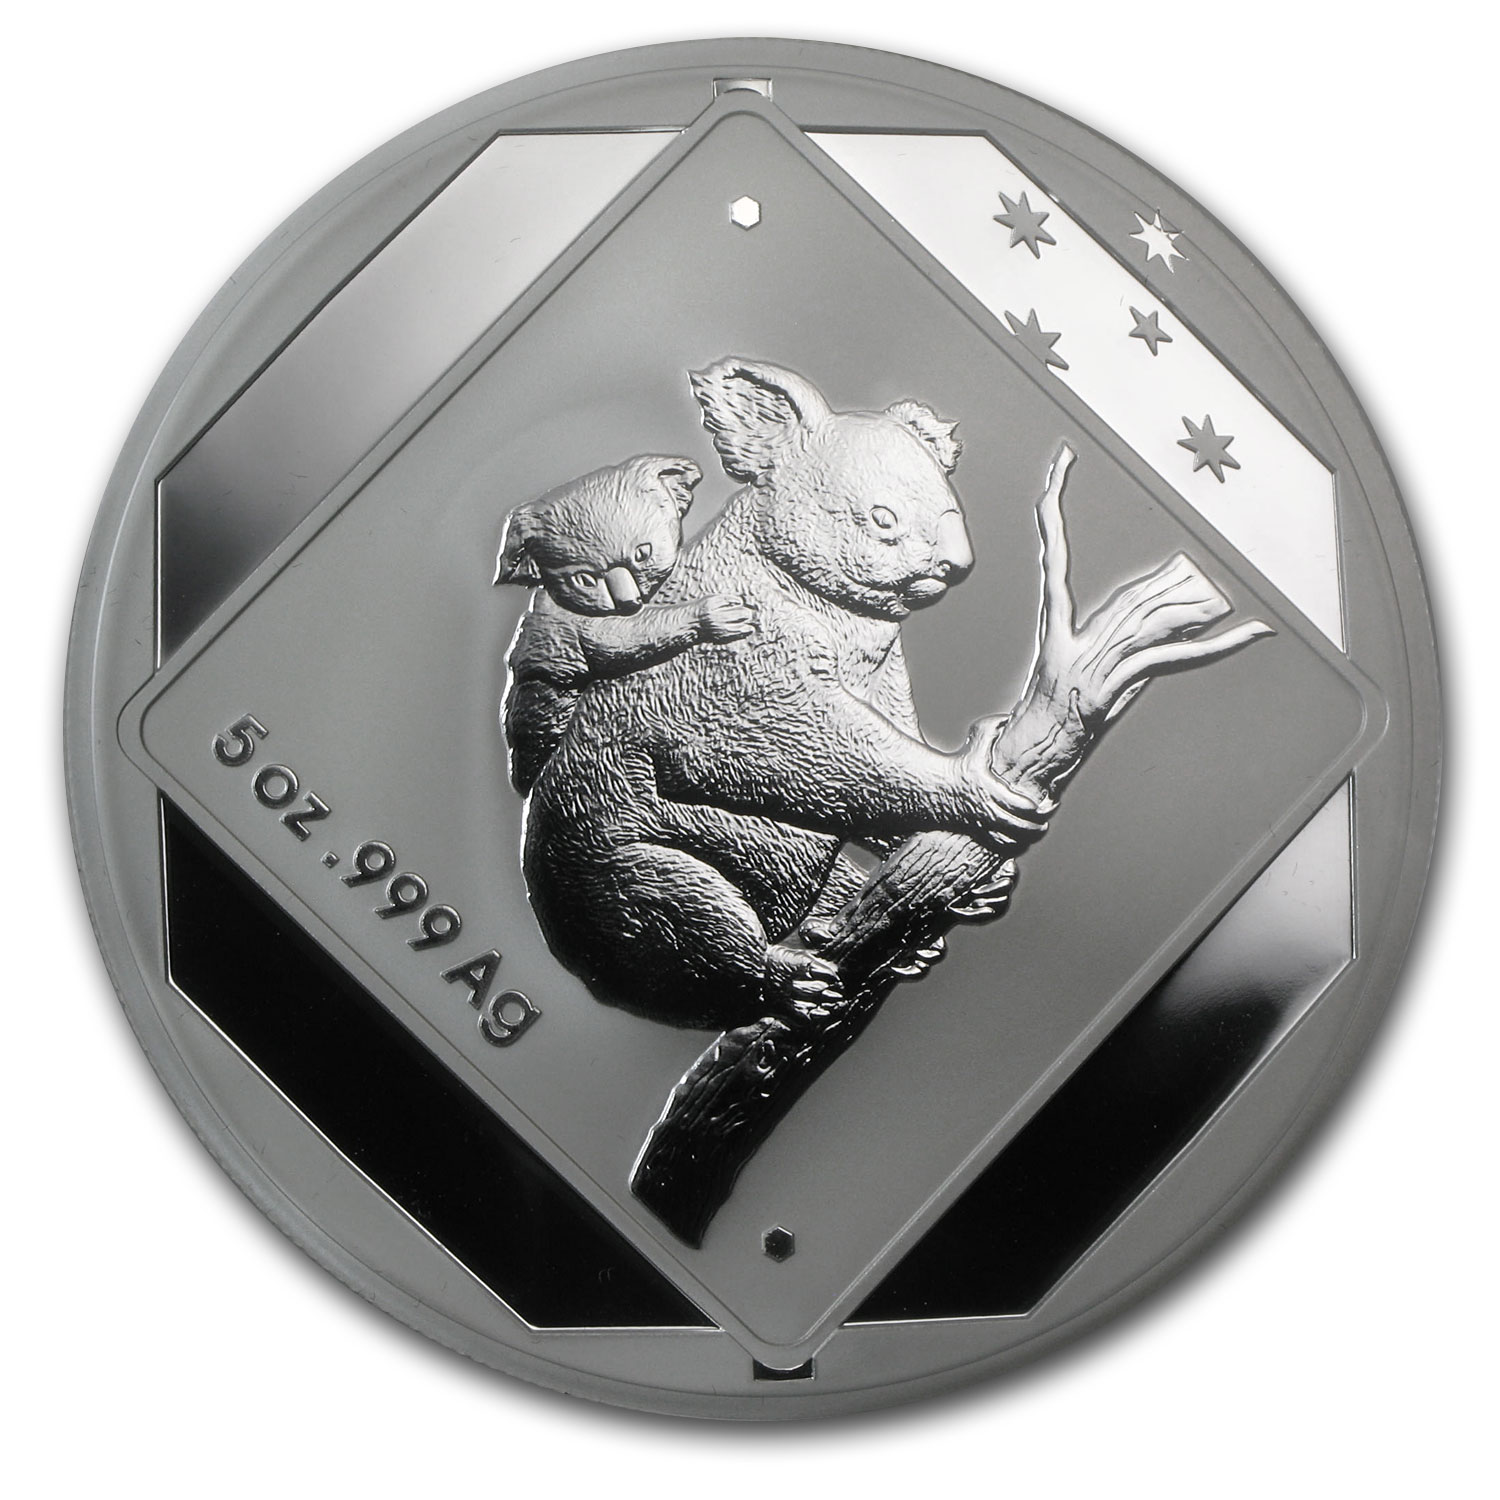 2014 5 oz Australian Silver Koala Road Sign